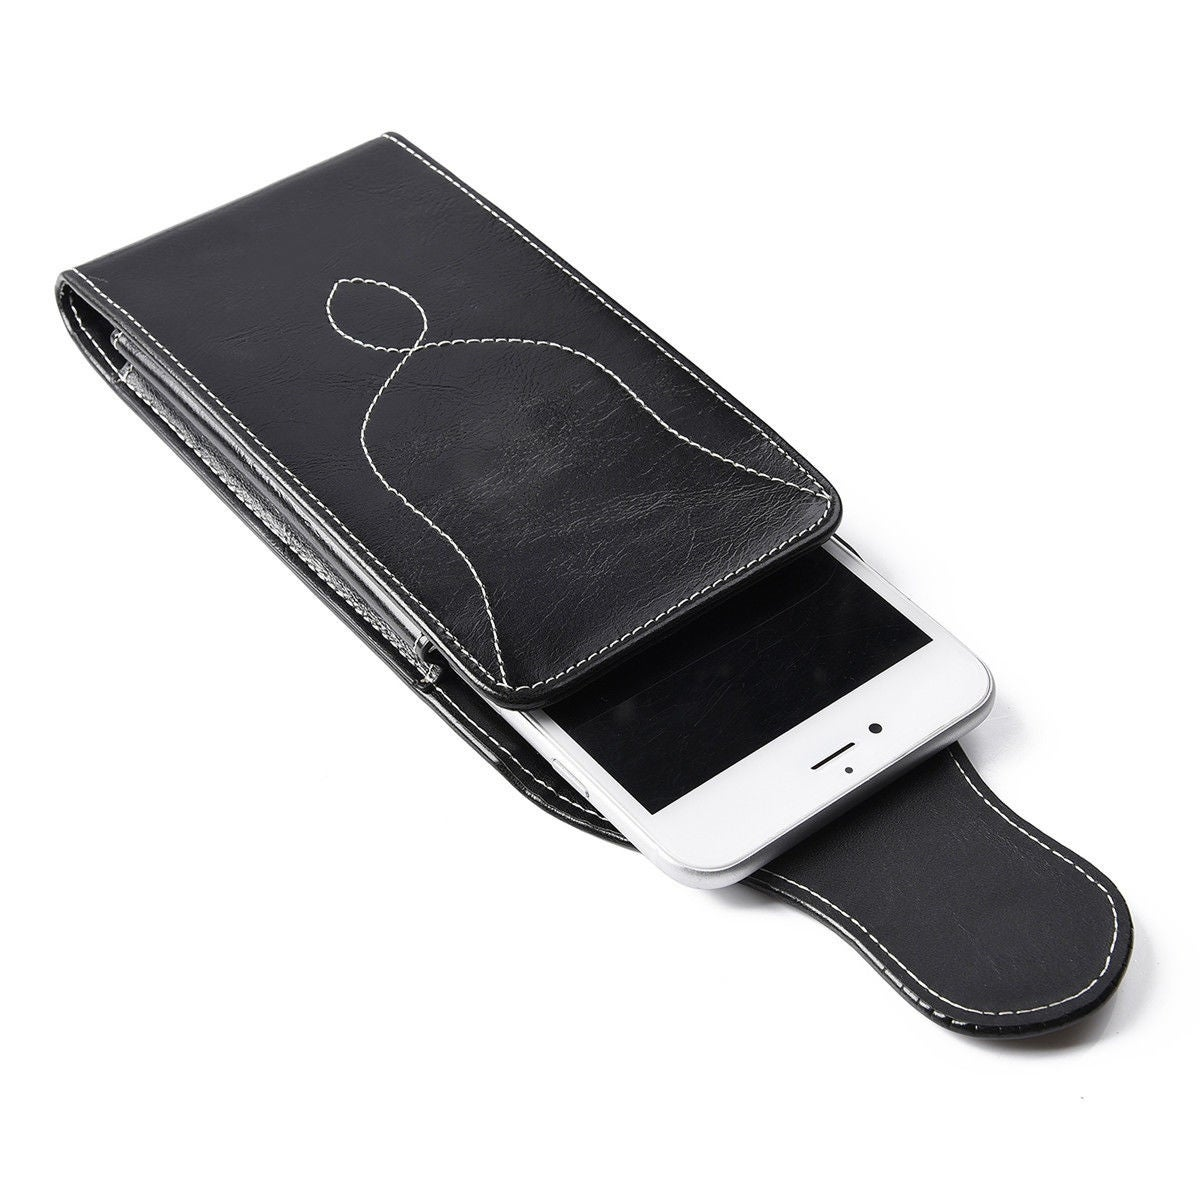 official photos bec2c 3e021 Vertical Leather Case Cover Pouch Holster Belt Clip For Cell Phones